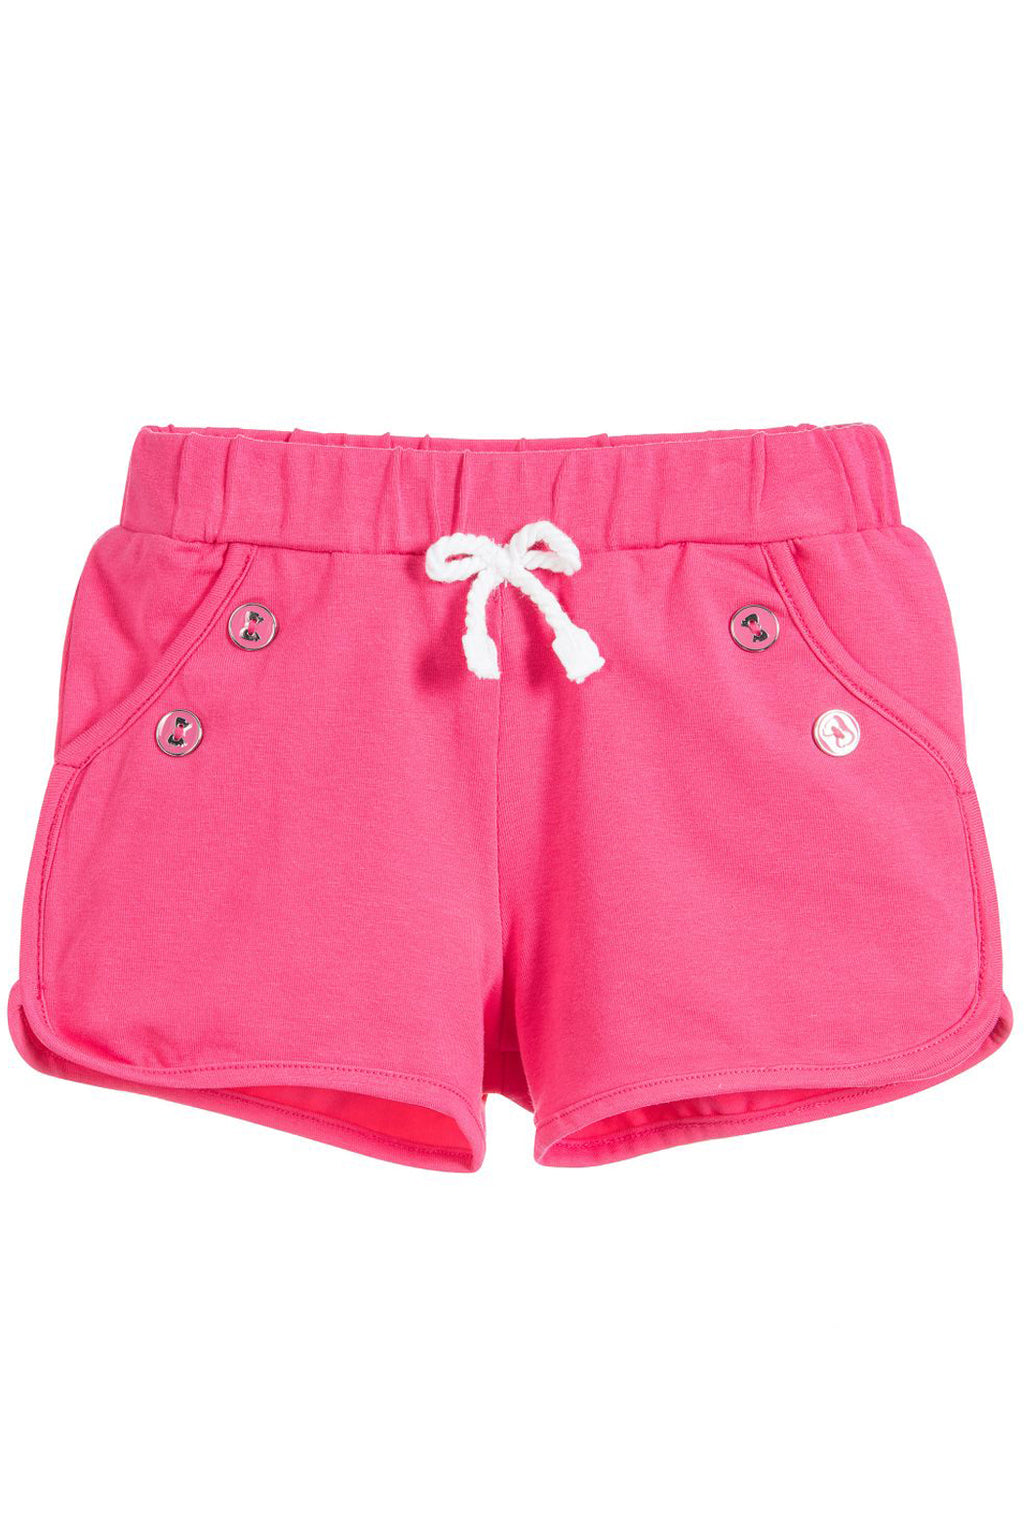 Mayoral - Fuchsia Knit Shorts - kkgivingtree - K&K's Giving Tree